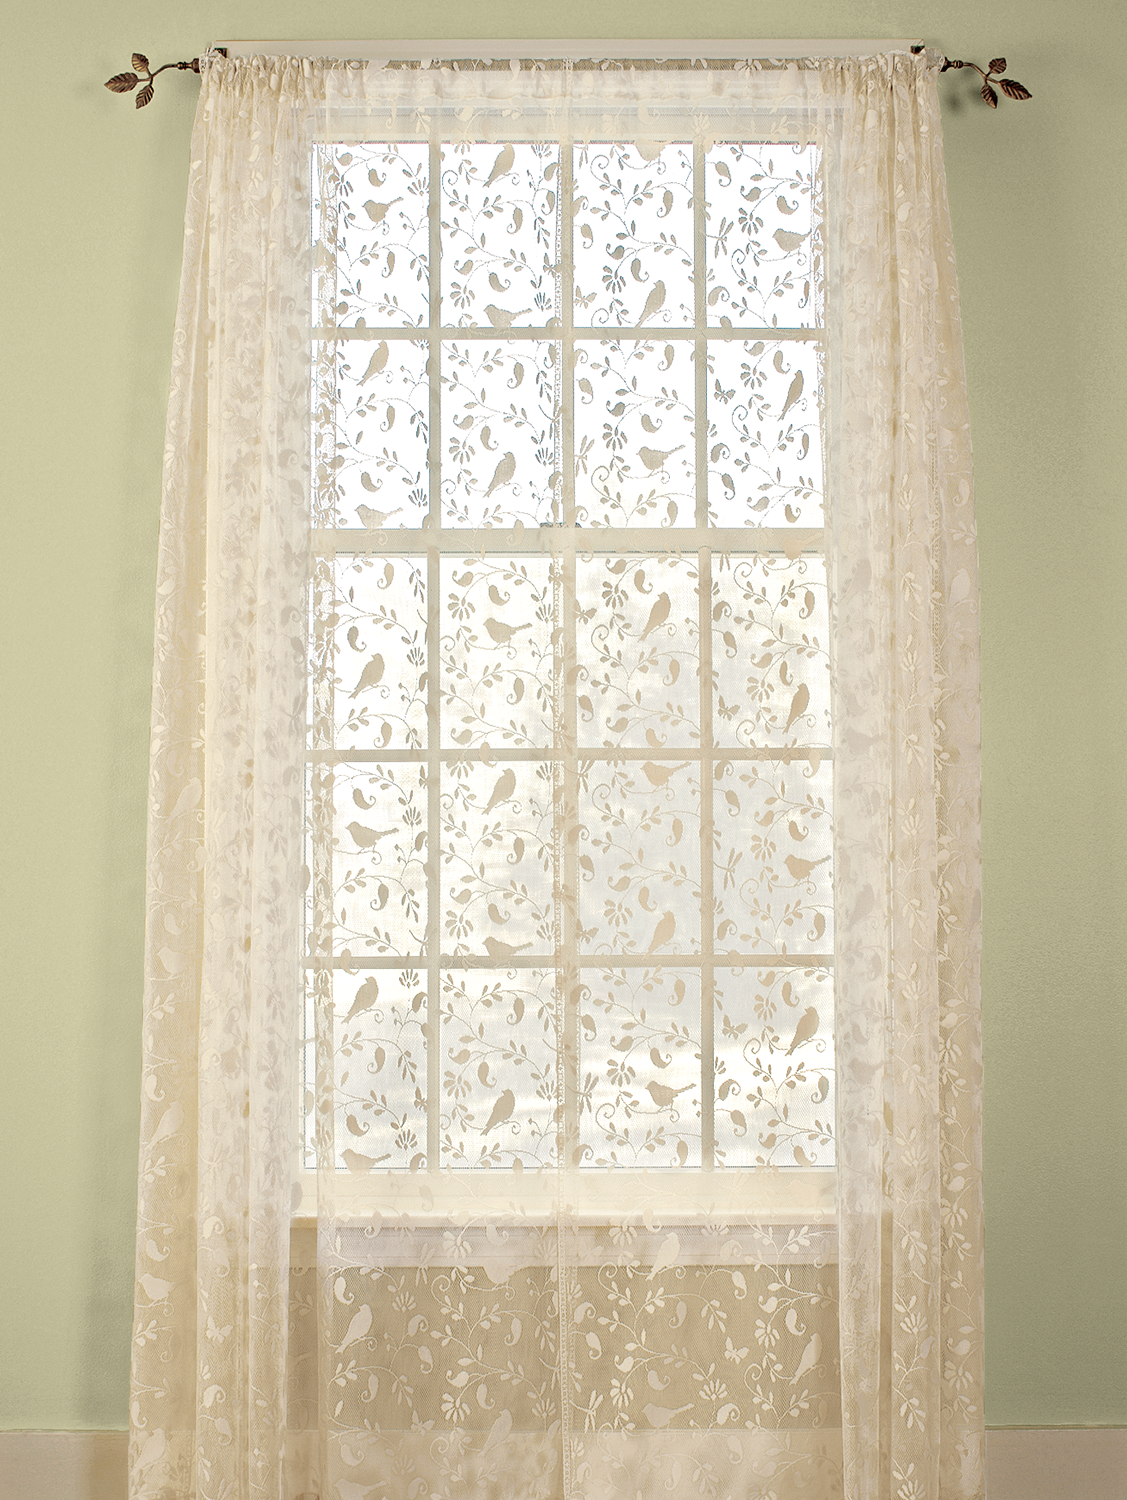 Birdsong Lace Rod Pocket Panel And Tier Rod Pocket Panel Cottage Curtains Drapes Curtains